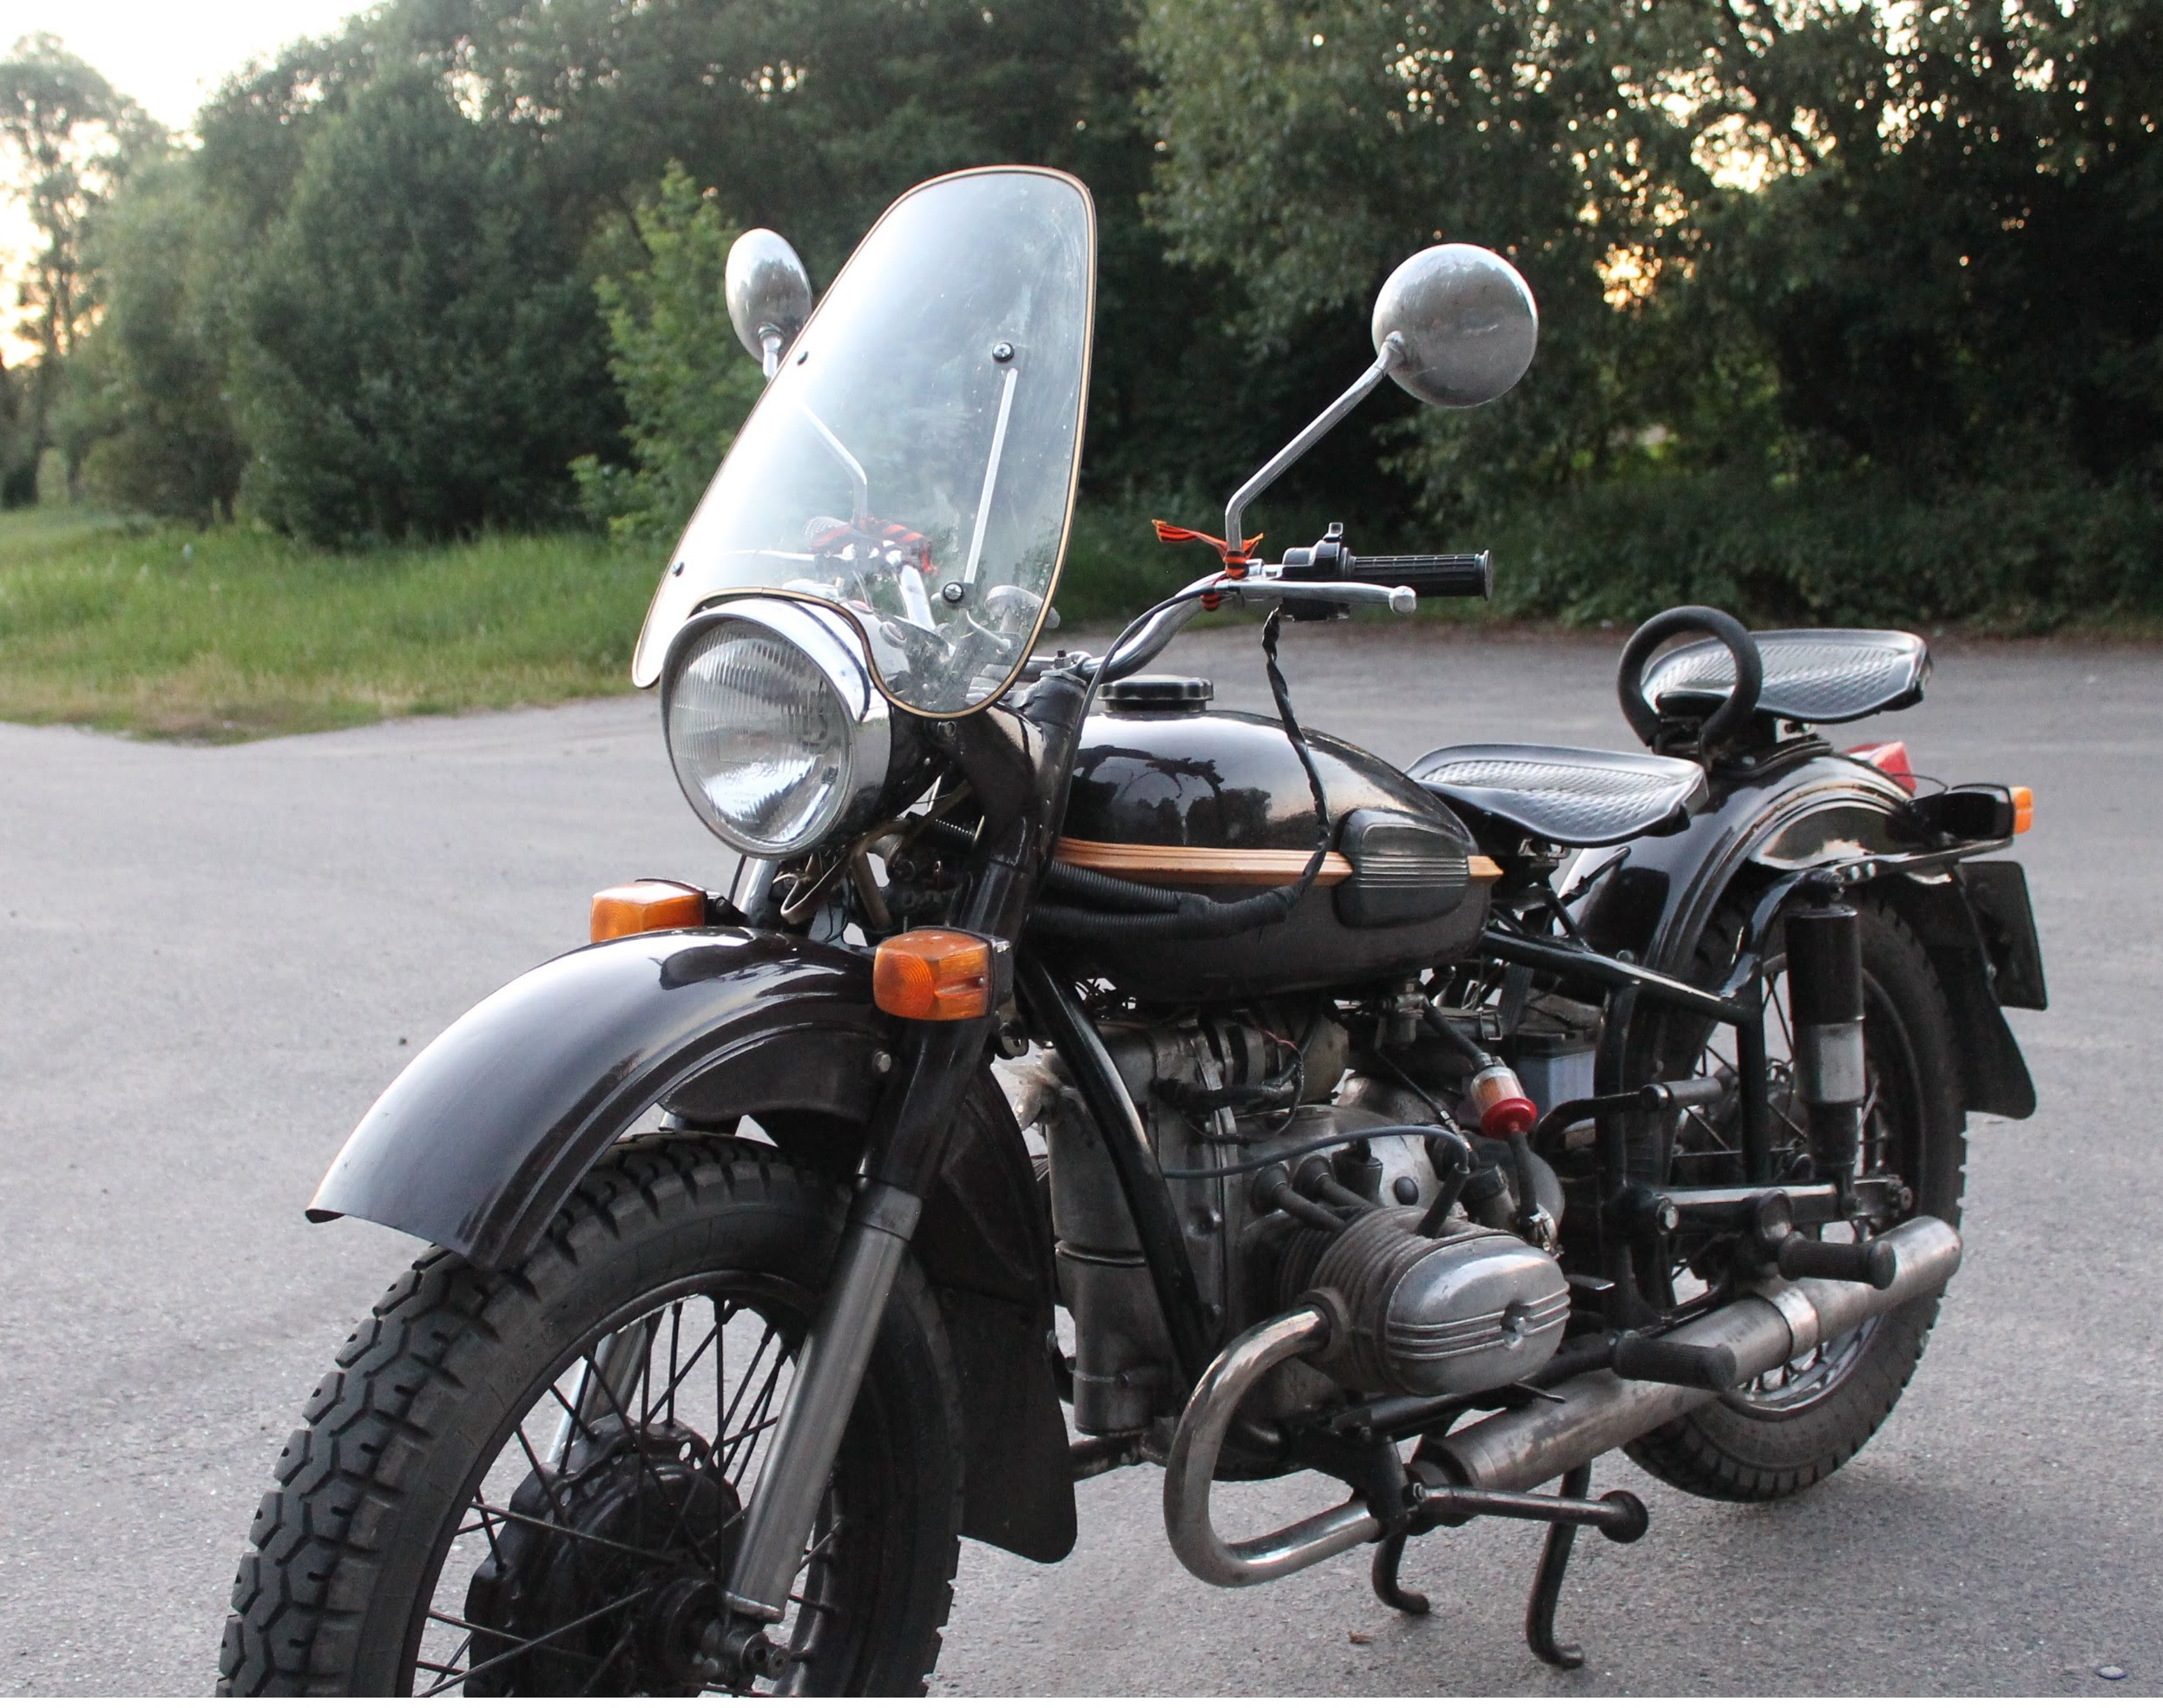 Ural M 66 with sidecar 1975 images #127253